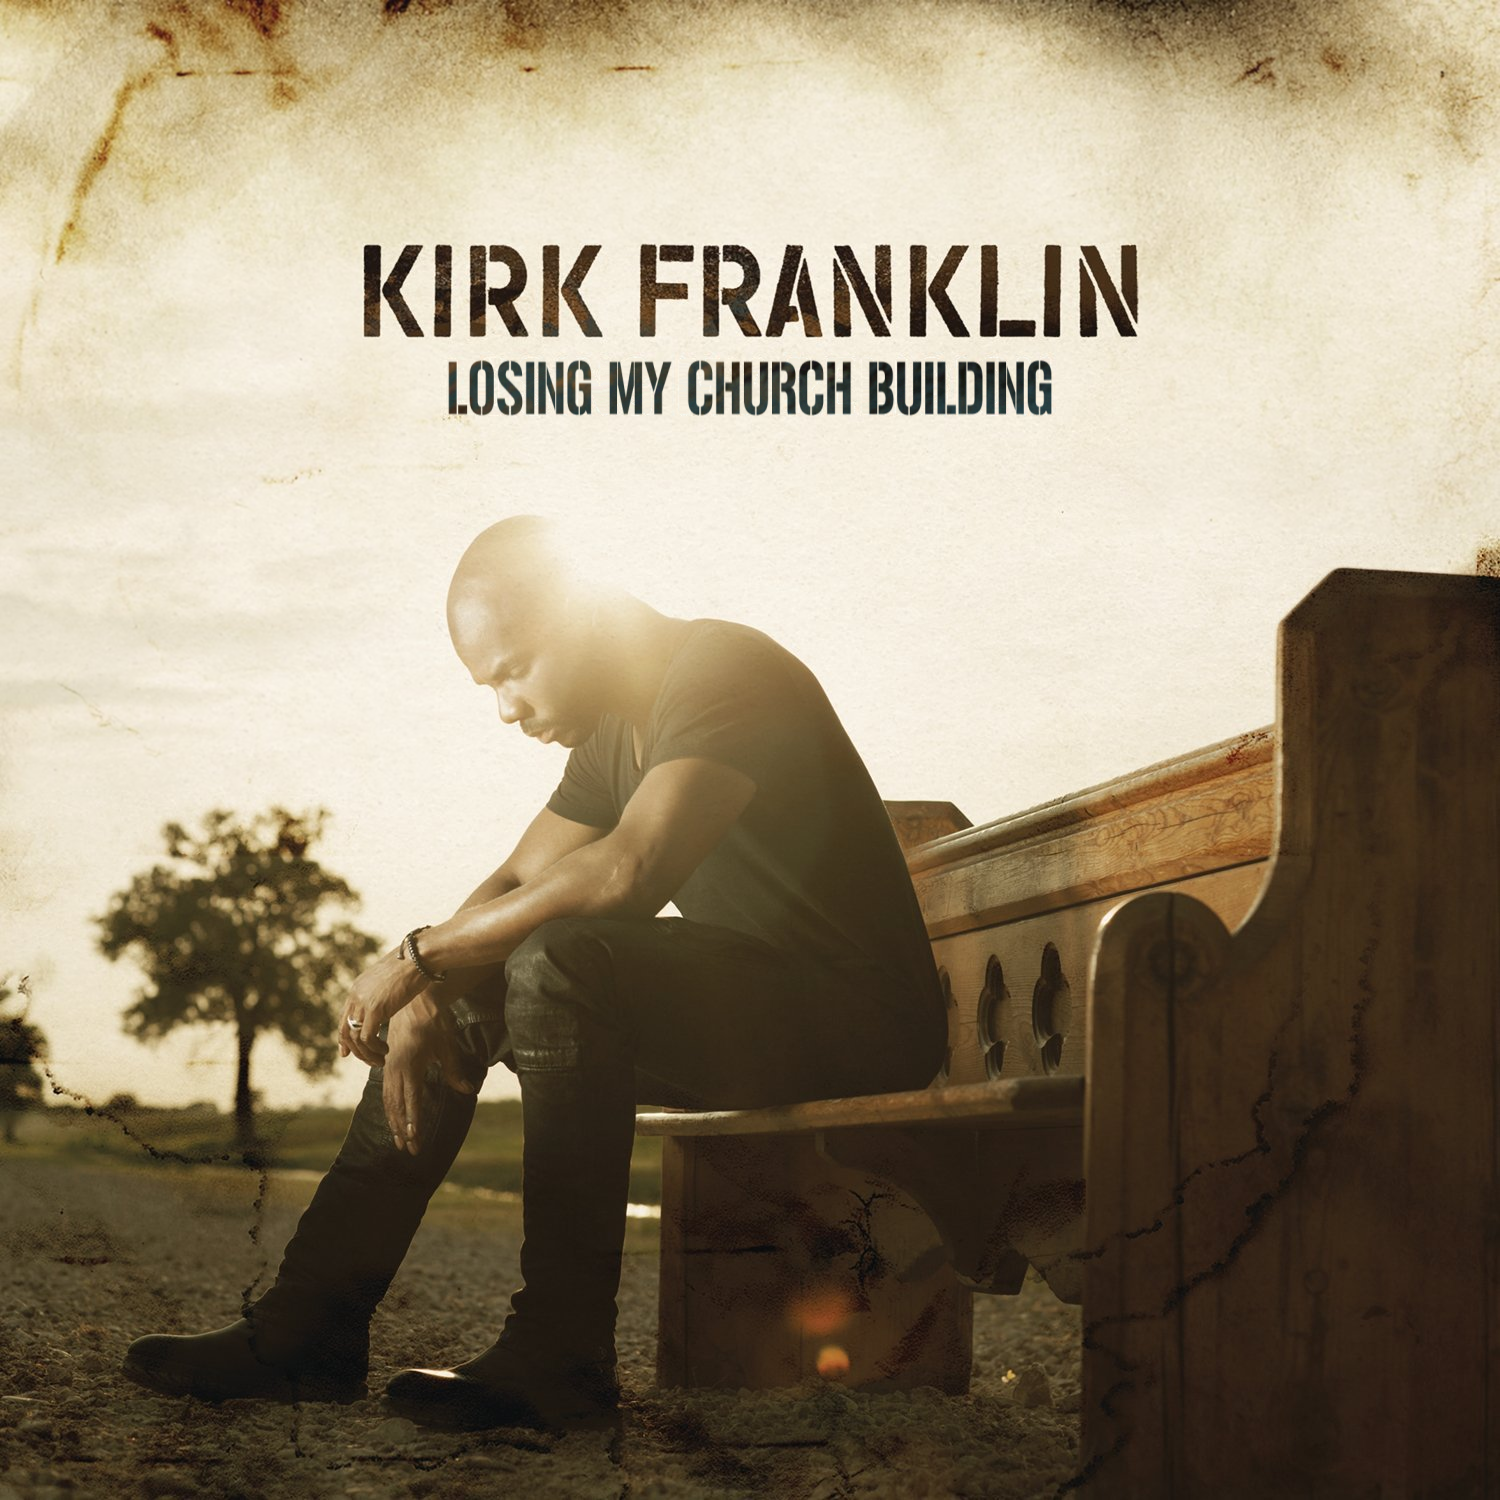 Album cover parody of Losing My Religion by Kirk Franklin